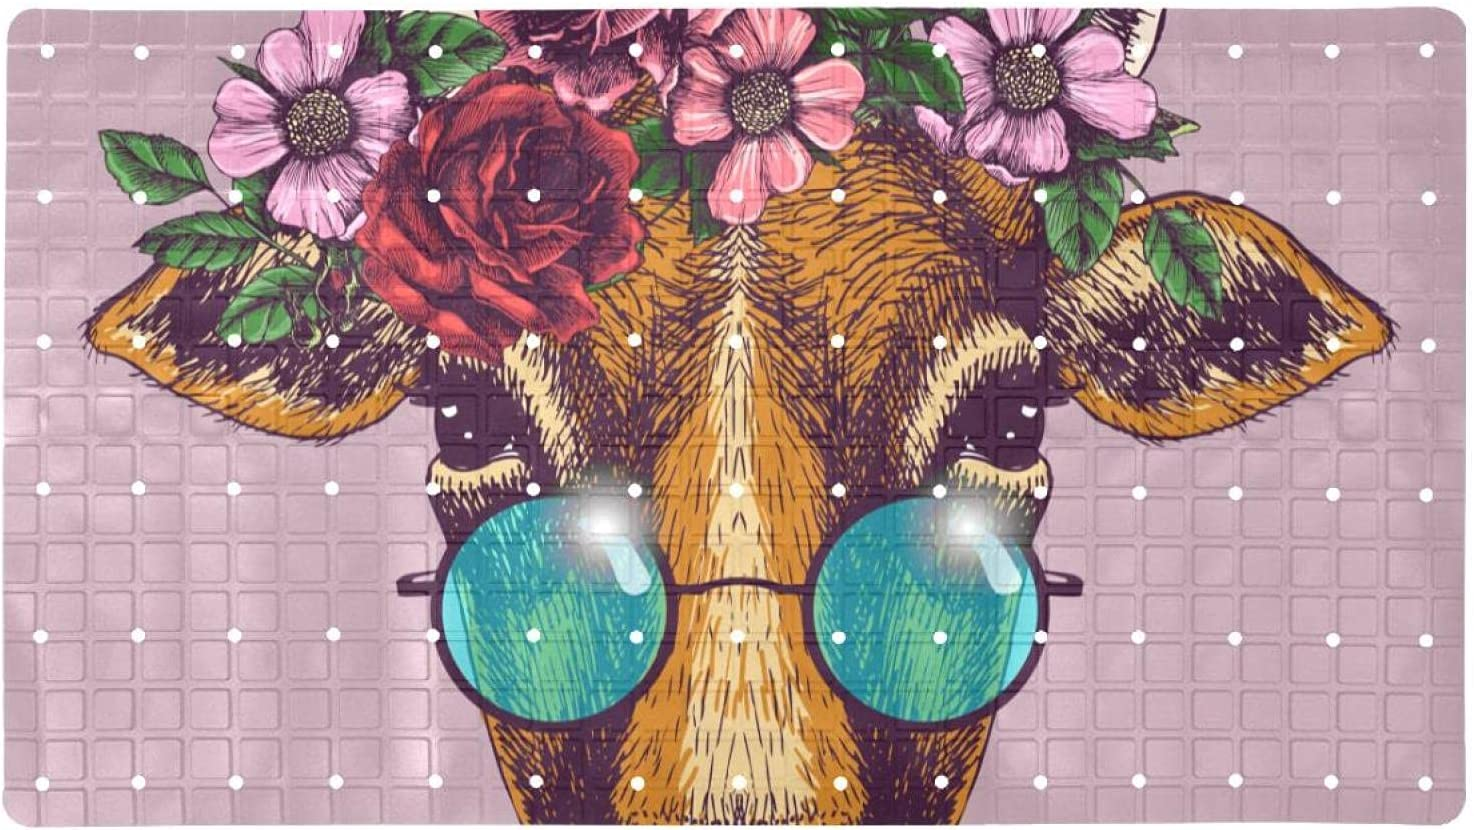 Bath Tub Shower New York Mall Mat 15.7x27.9 inches Colorado Springs Mall with Portrait Floral Wr Cow